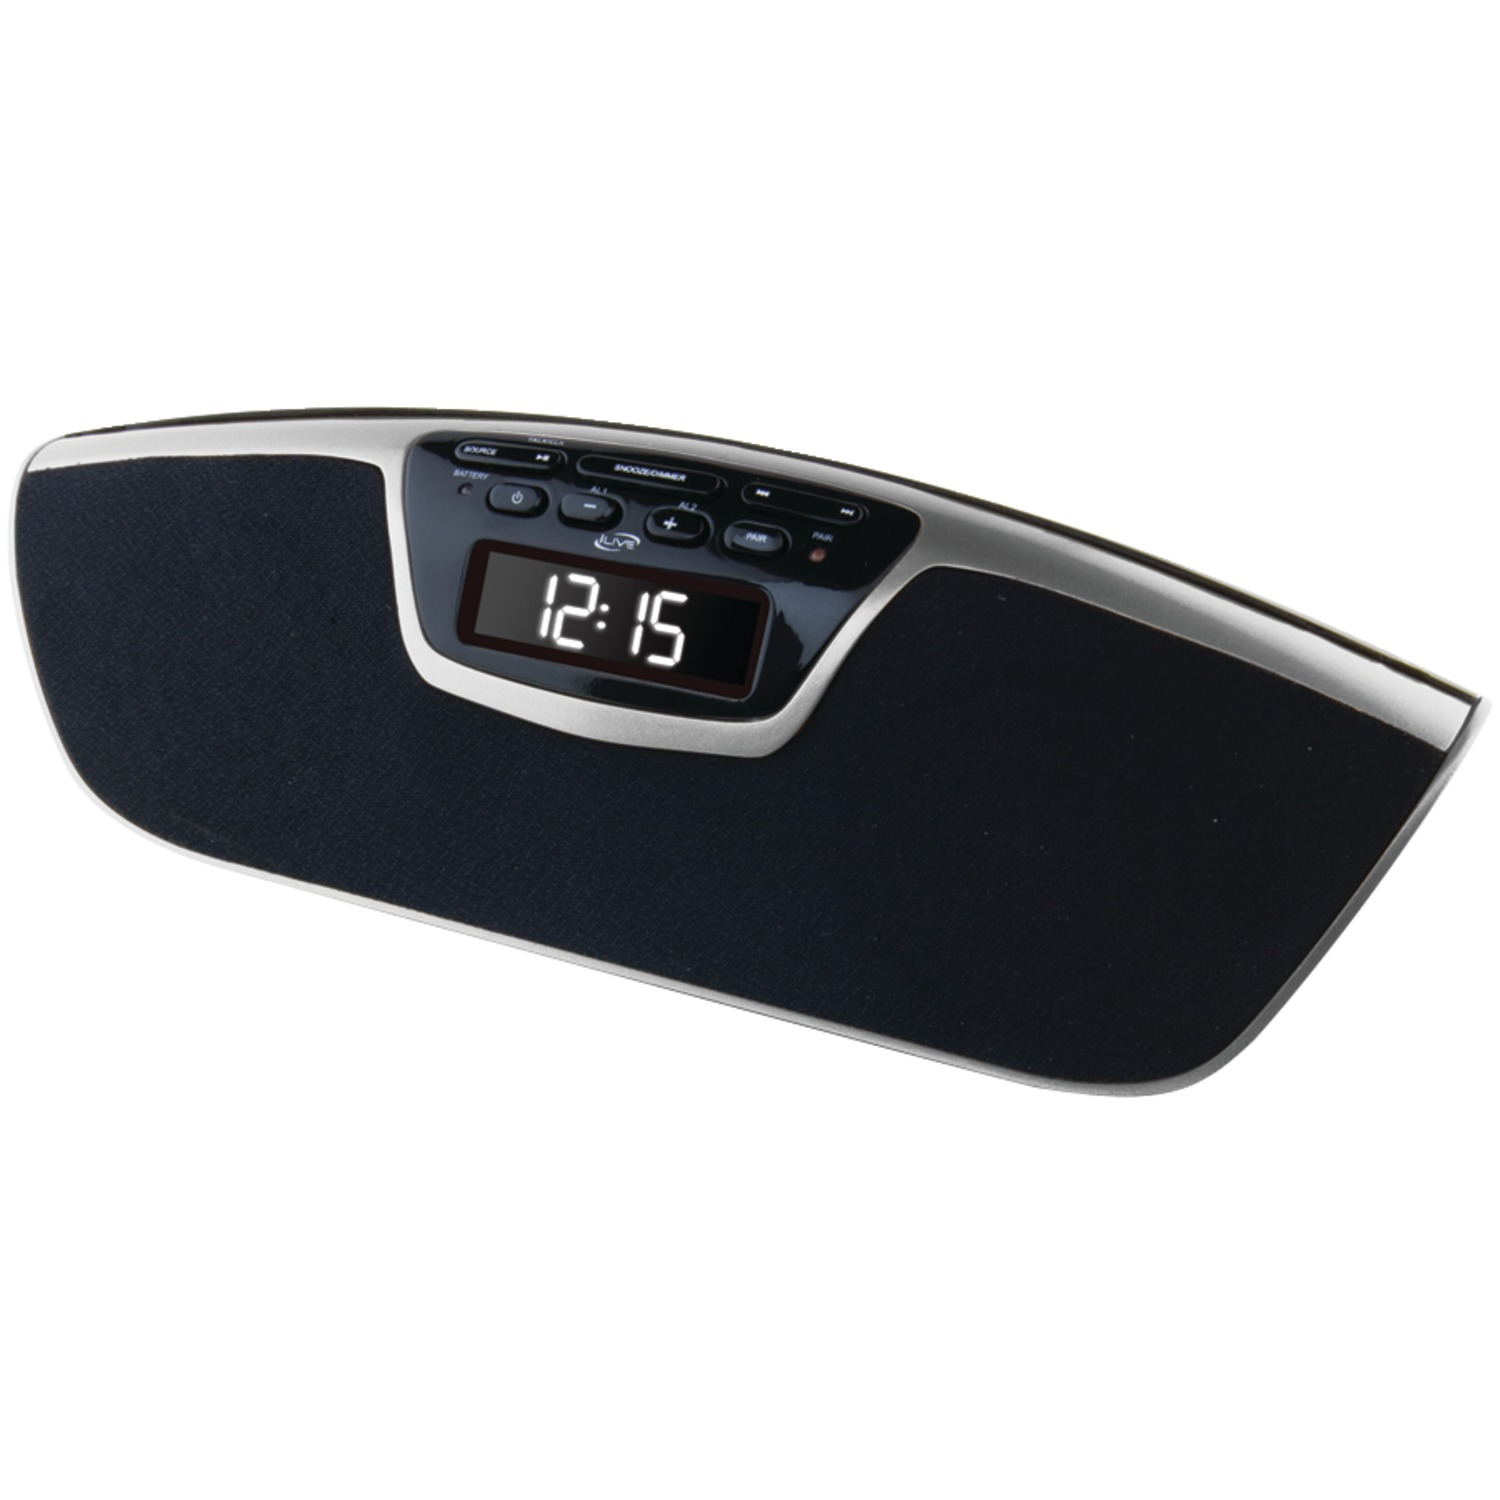 ilive icb213s bluetooth r dual alarm clock radio with speakerphone. Black Bedroom Furniture Sets. Home Design Ideas